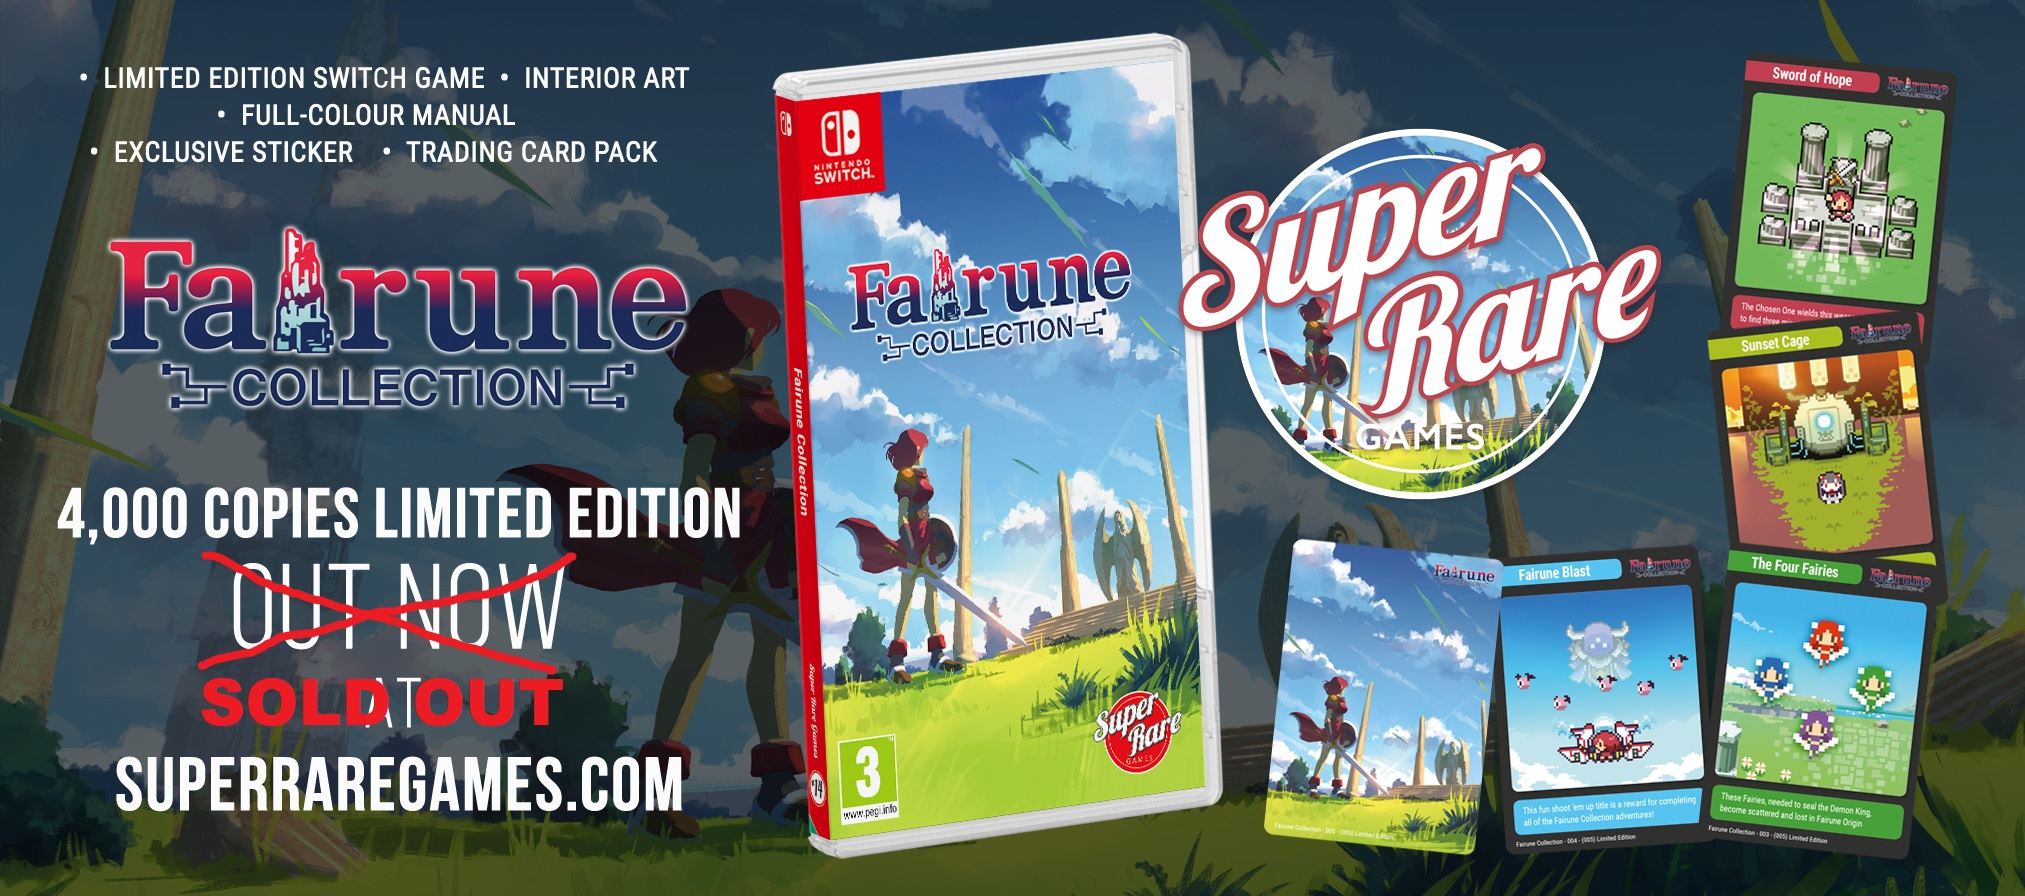 Enter for a chance to win a Switch physical copy of Fairune Collection from Super Rare Games! Giveaway Image